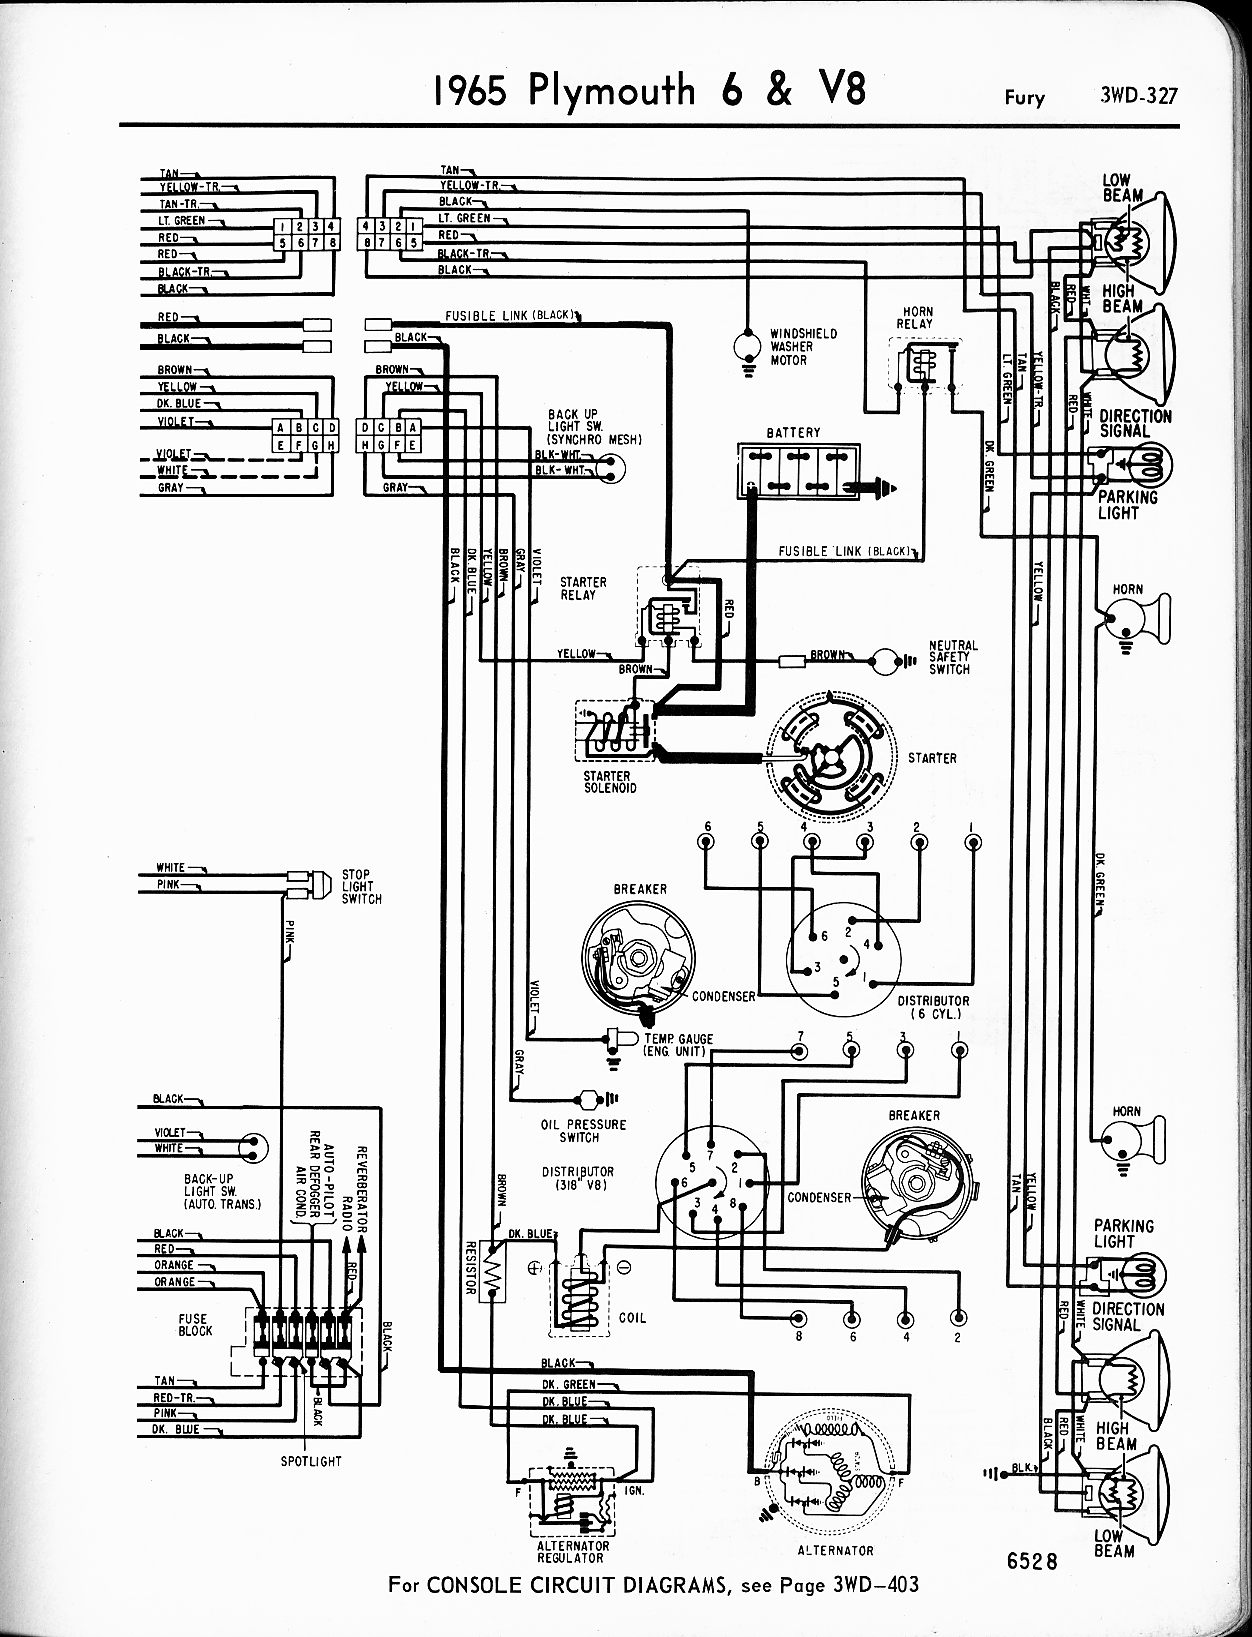 1939 plymouth wiring diagram wiring diagram rh 10 yoga neuwied de